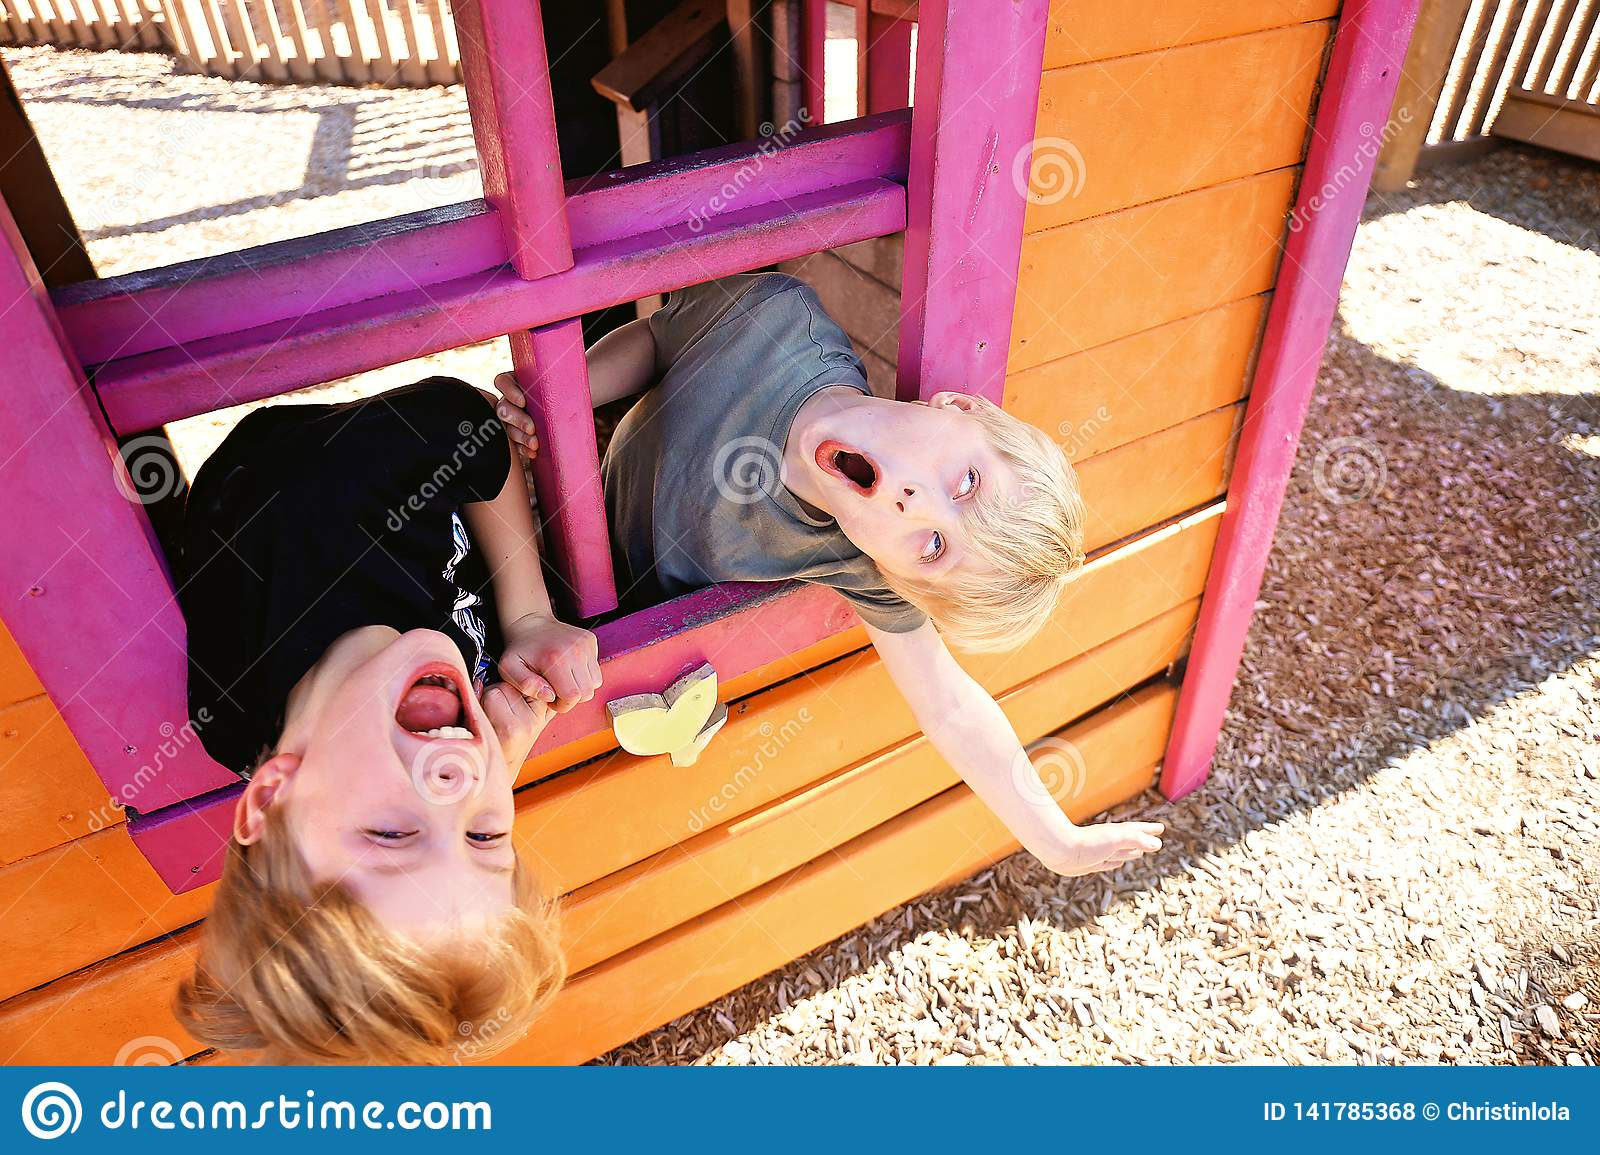 Two Cute Little Kids Playing Outside in a Club House at a Playground, Making Funny Faces